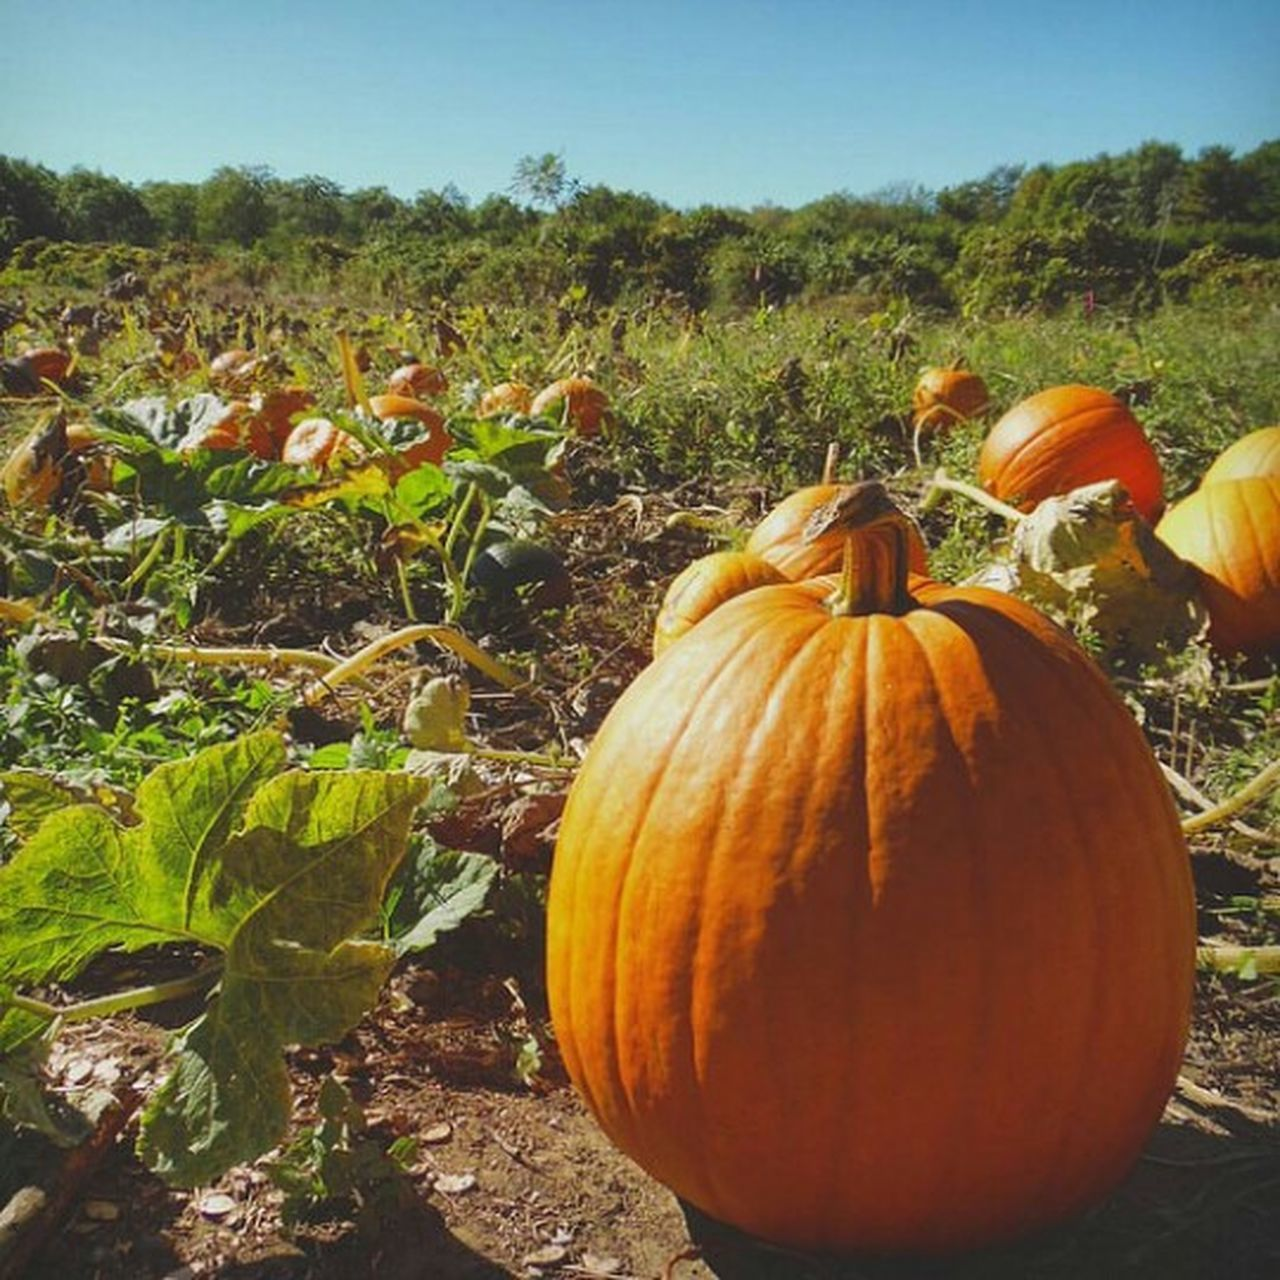 pumpkin, field, growth, plant, nature, no people, agriculture, outdoors, day, beauty in nature, halloween, landscape, freshness, food, sky, tree, close-up